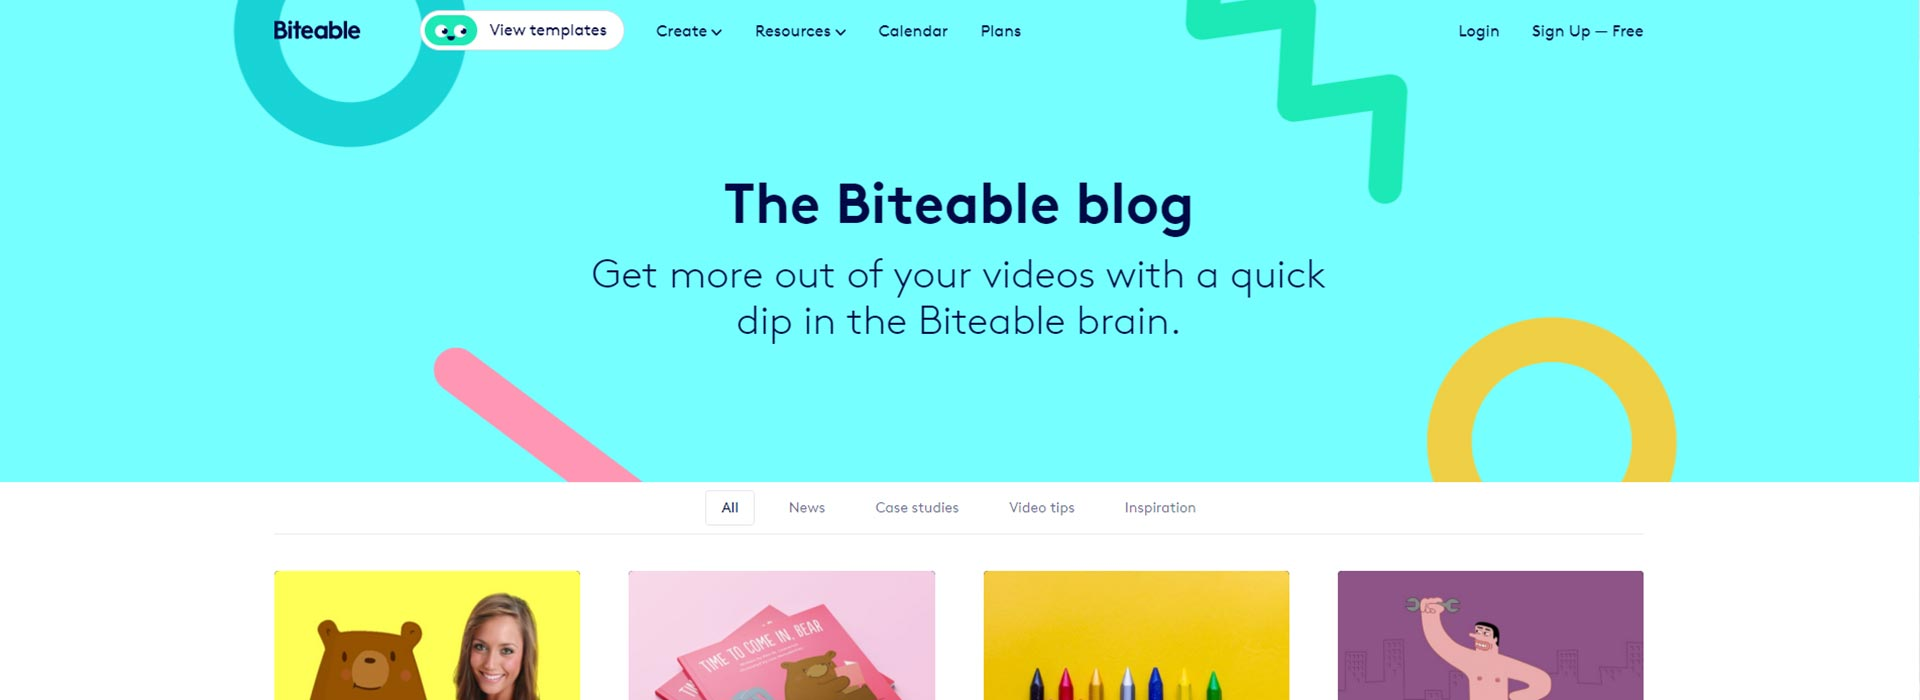 biteable blog